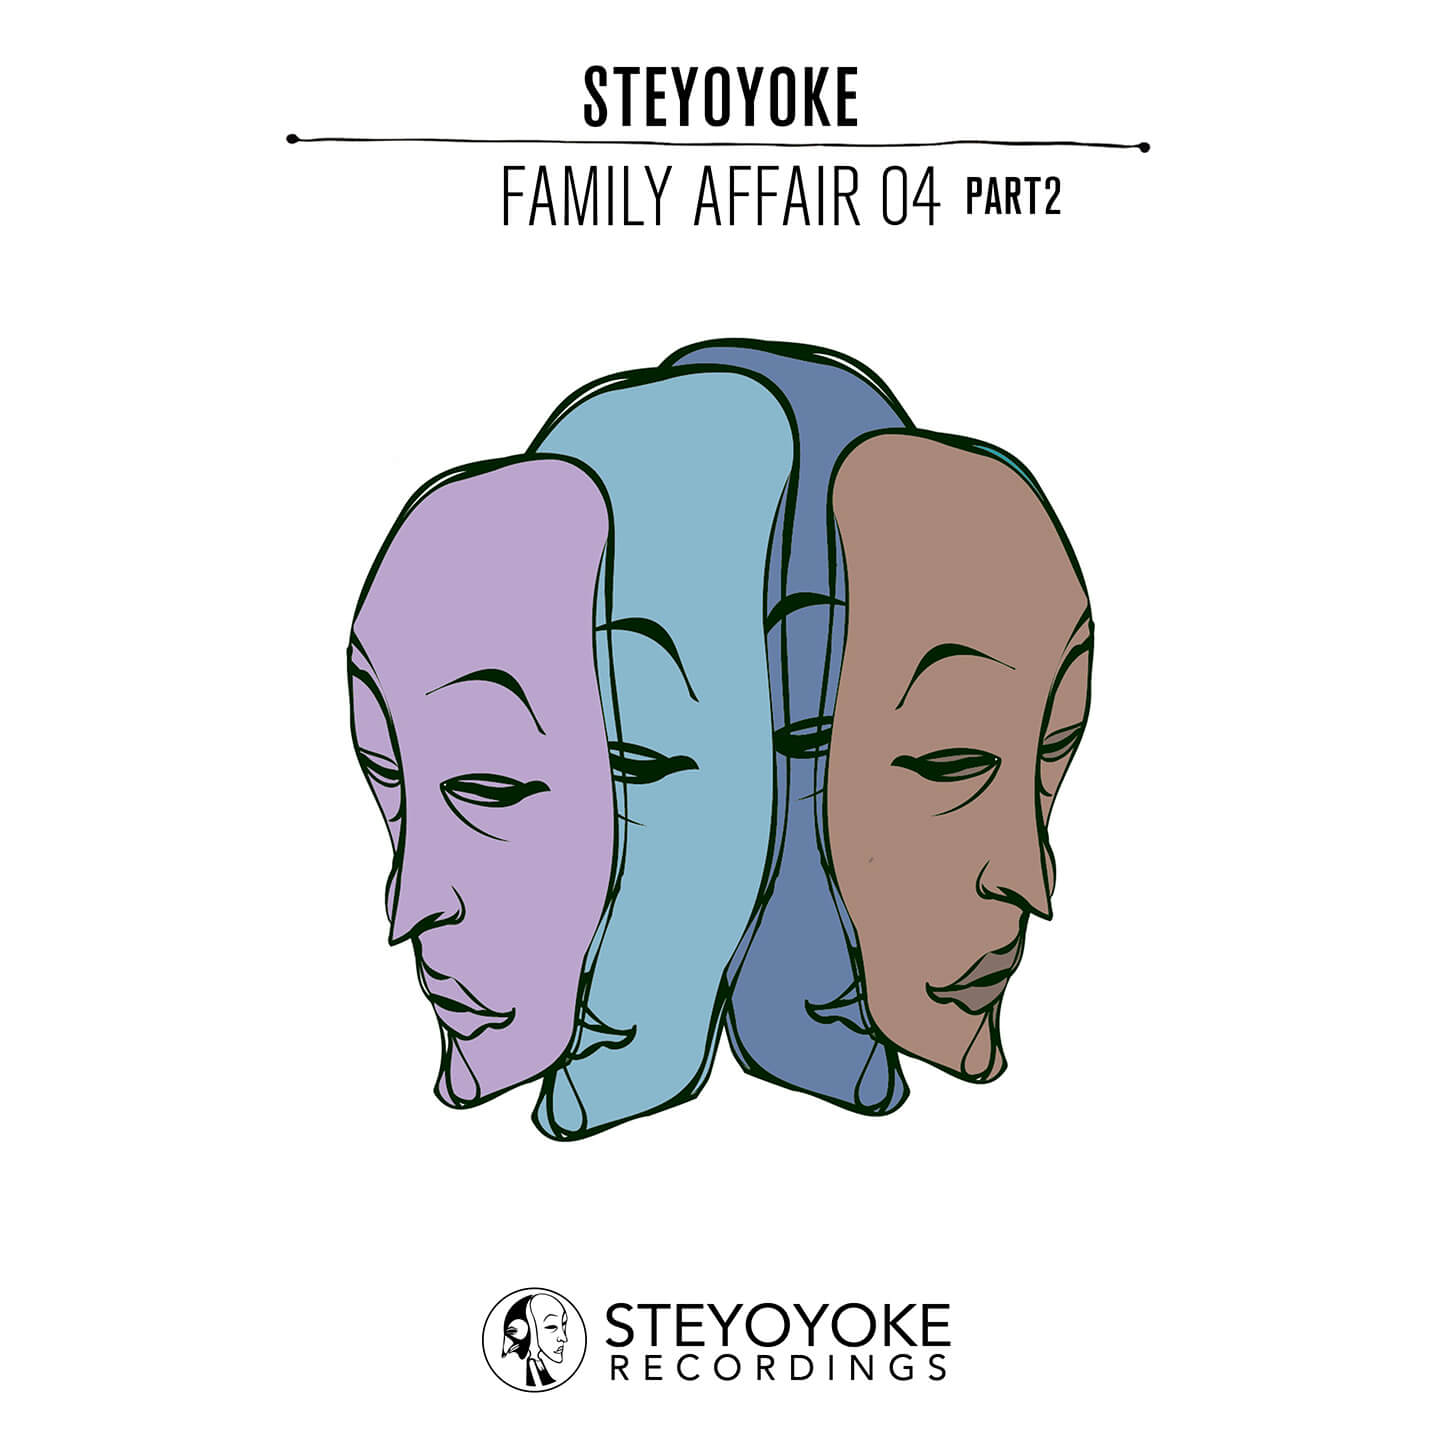 SYYK030 Steyoyoke VA - Family Affair 04 Part 2